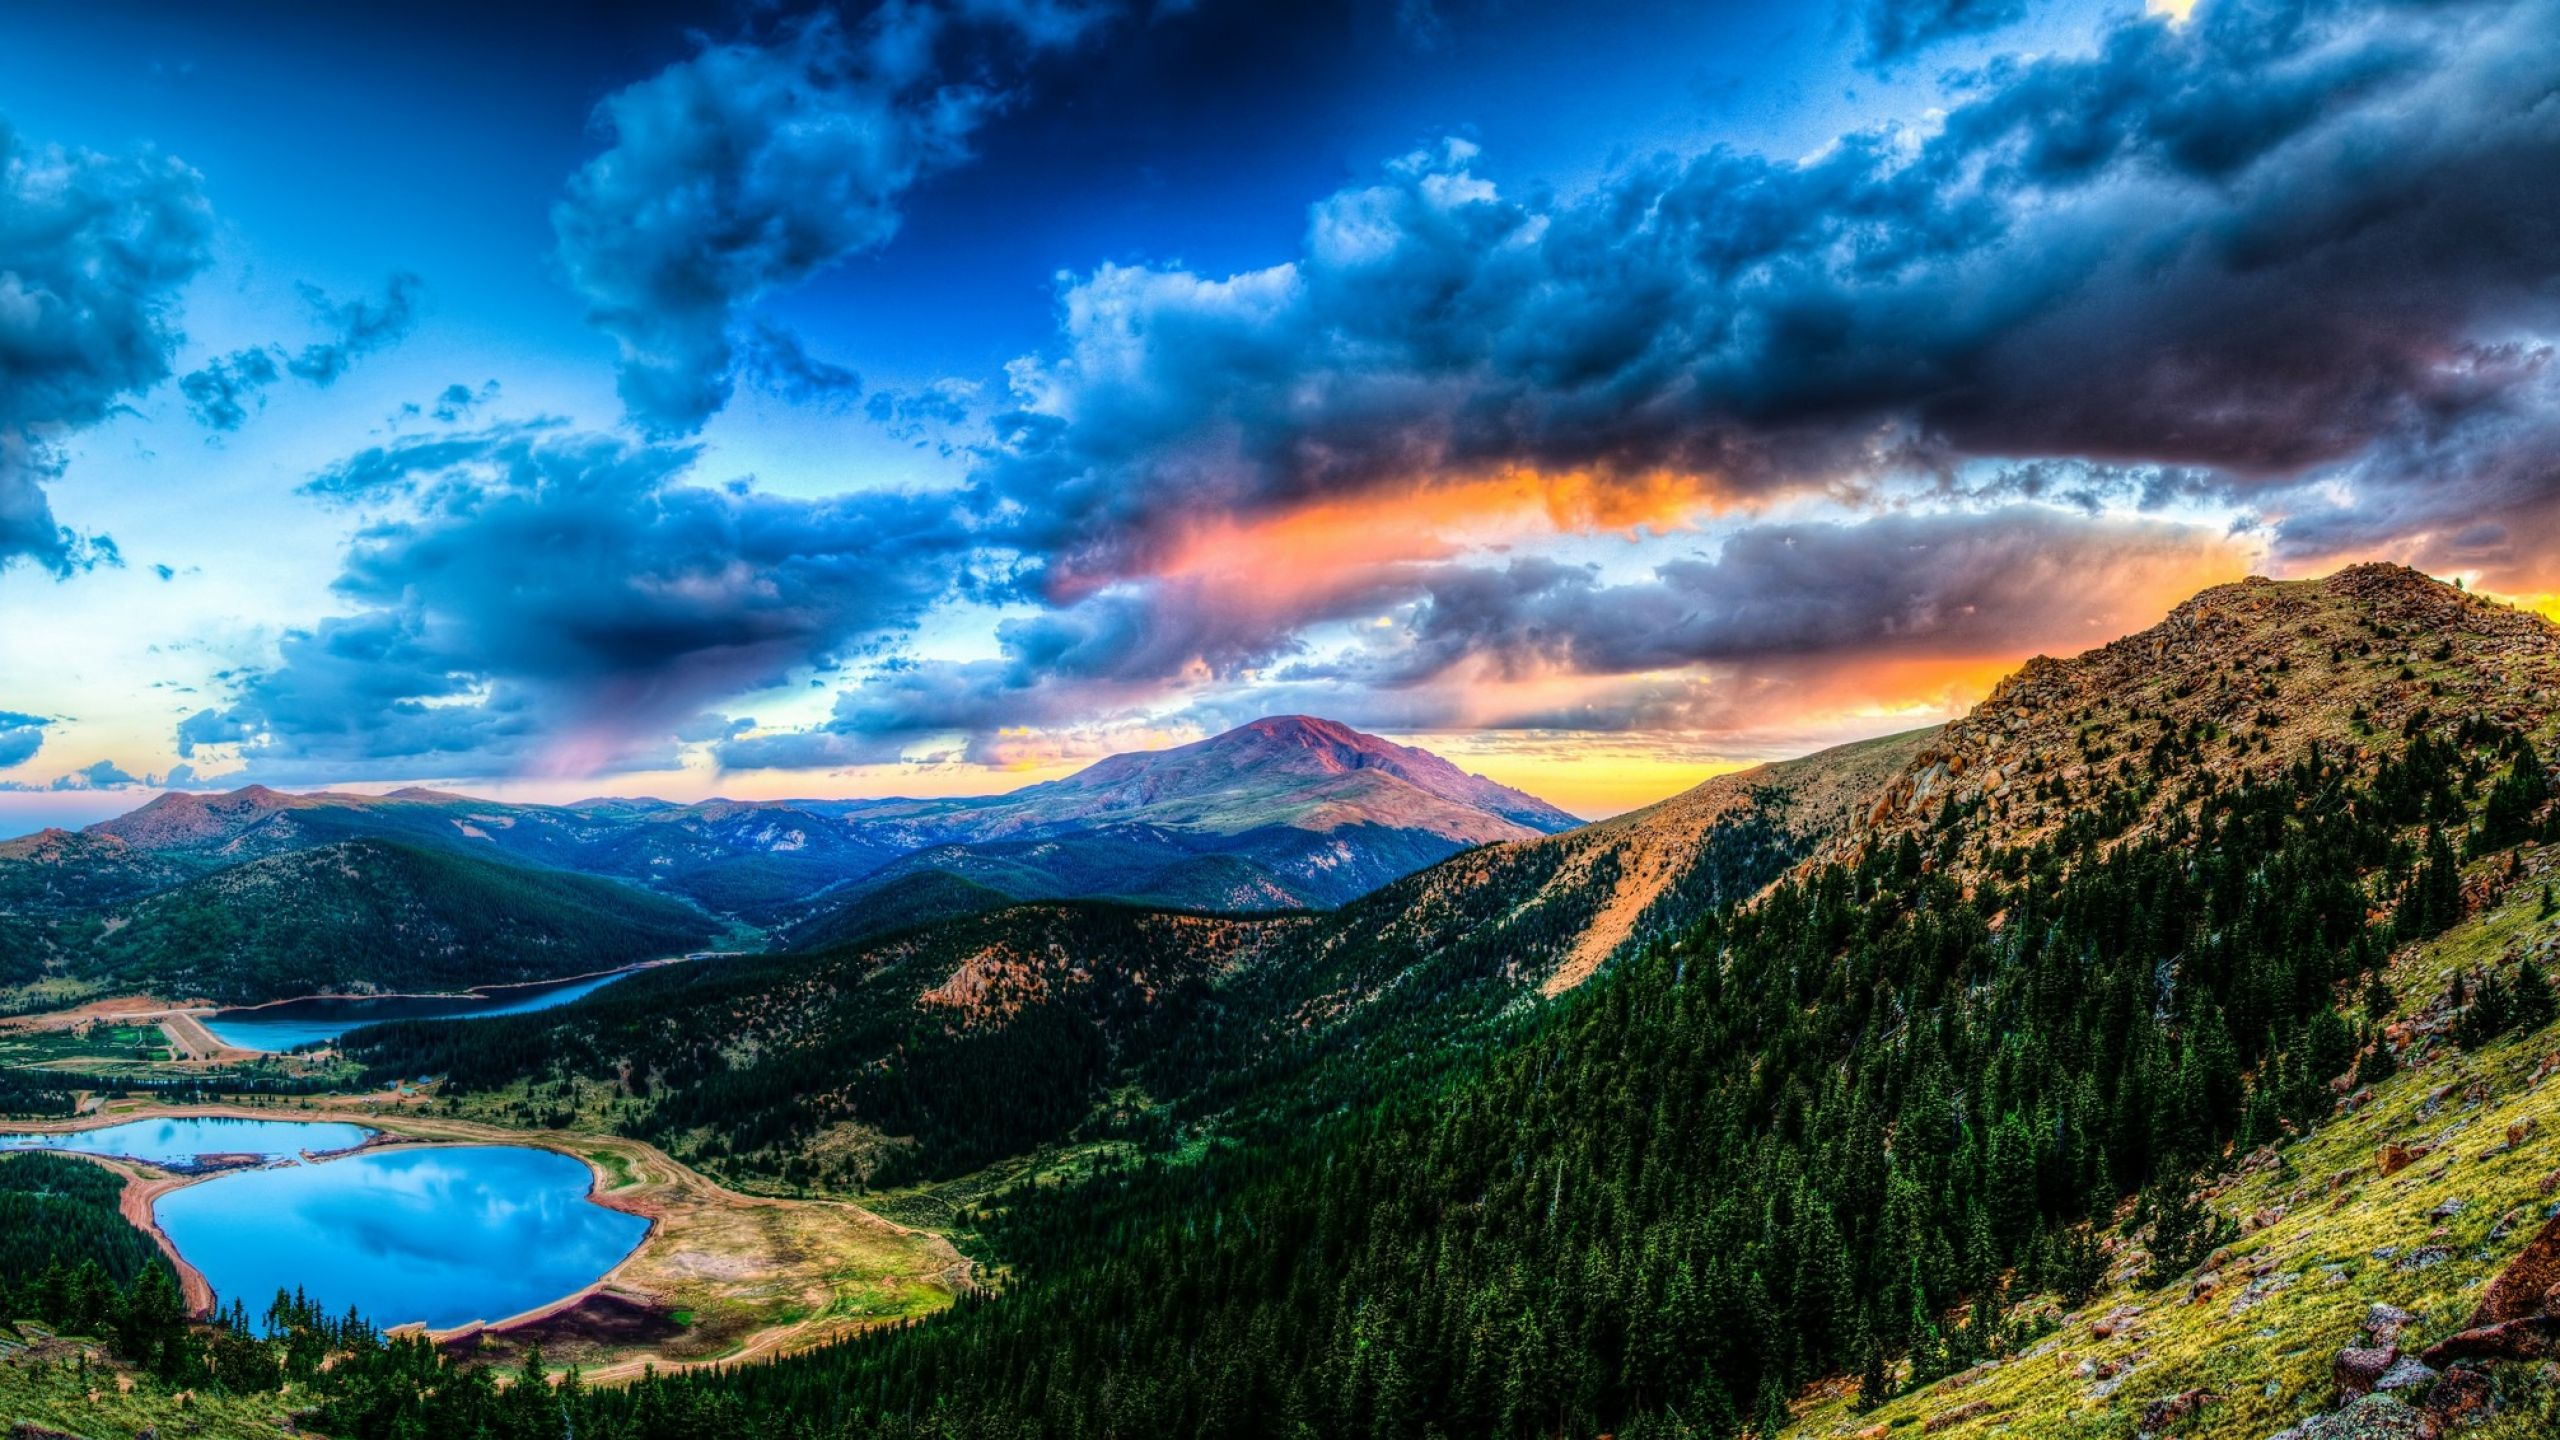 2560x1440 Wallpaper sunset, mountain, lake, landscape